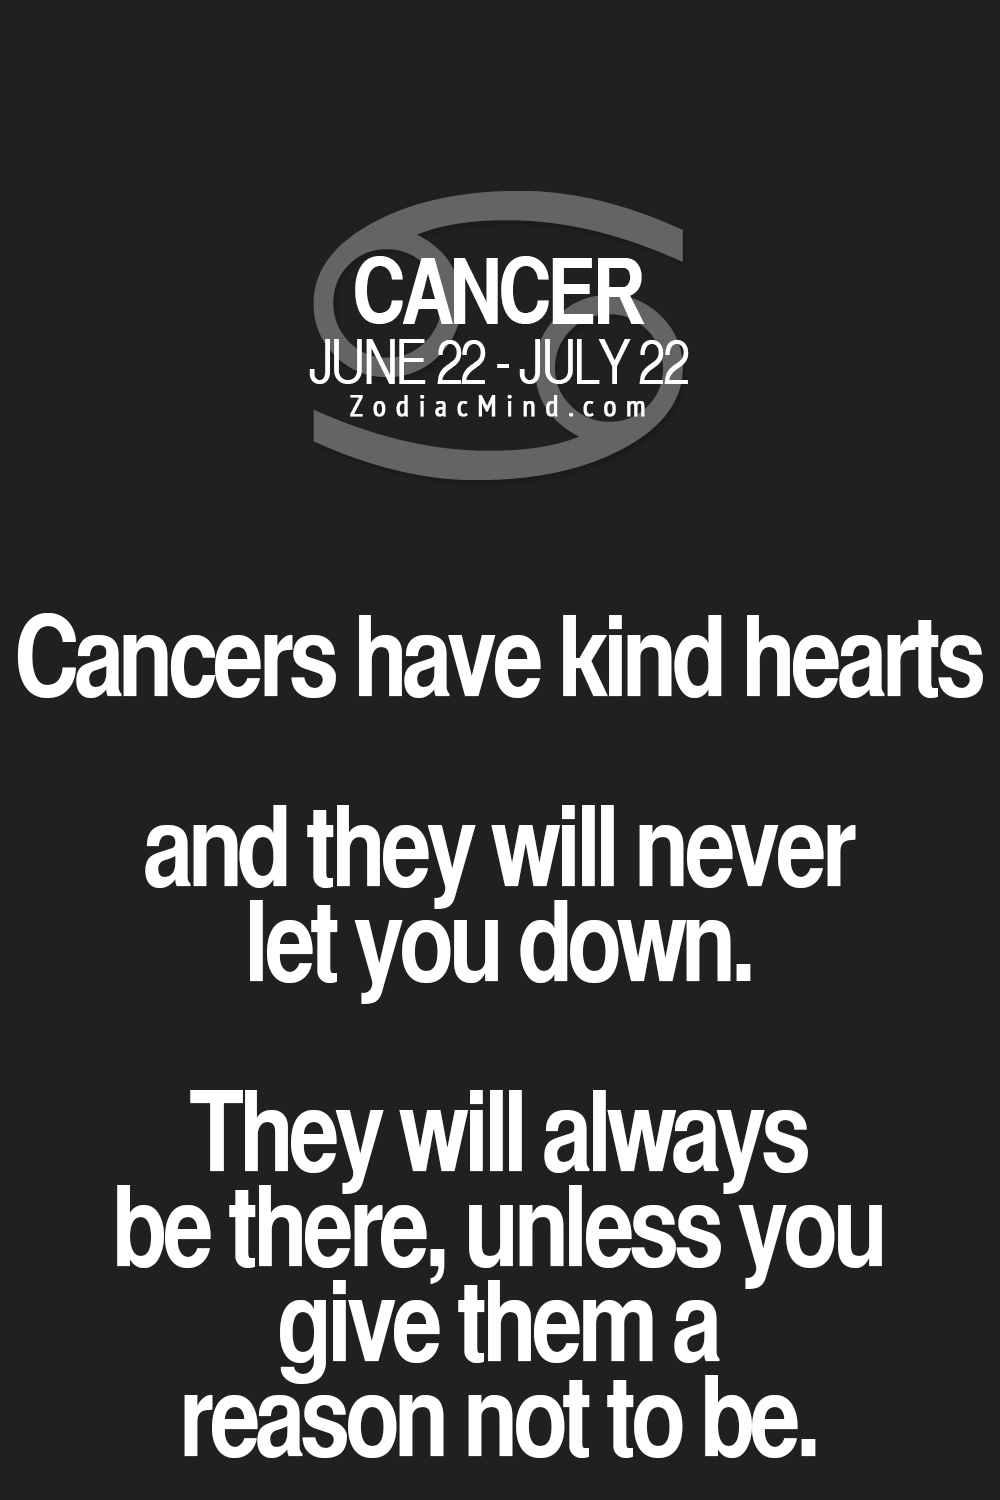 Cancer Zodiac Sign Need A Good Laugh, A Person With A Sense Of Humor, Who  Can Take The Edge Off When They're Feeling Down Or Just Needpany